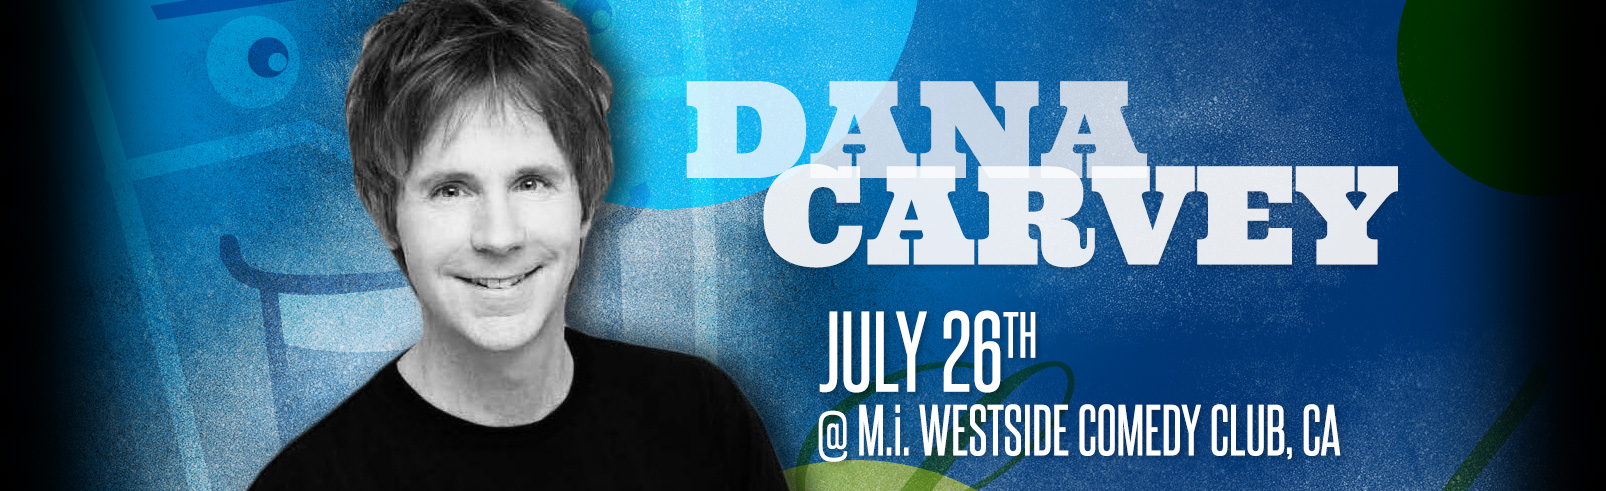 Dana Carvey @ M.i. Westside Comedy Theater